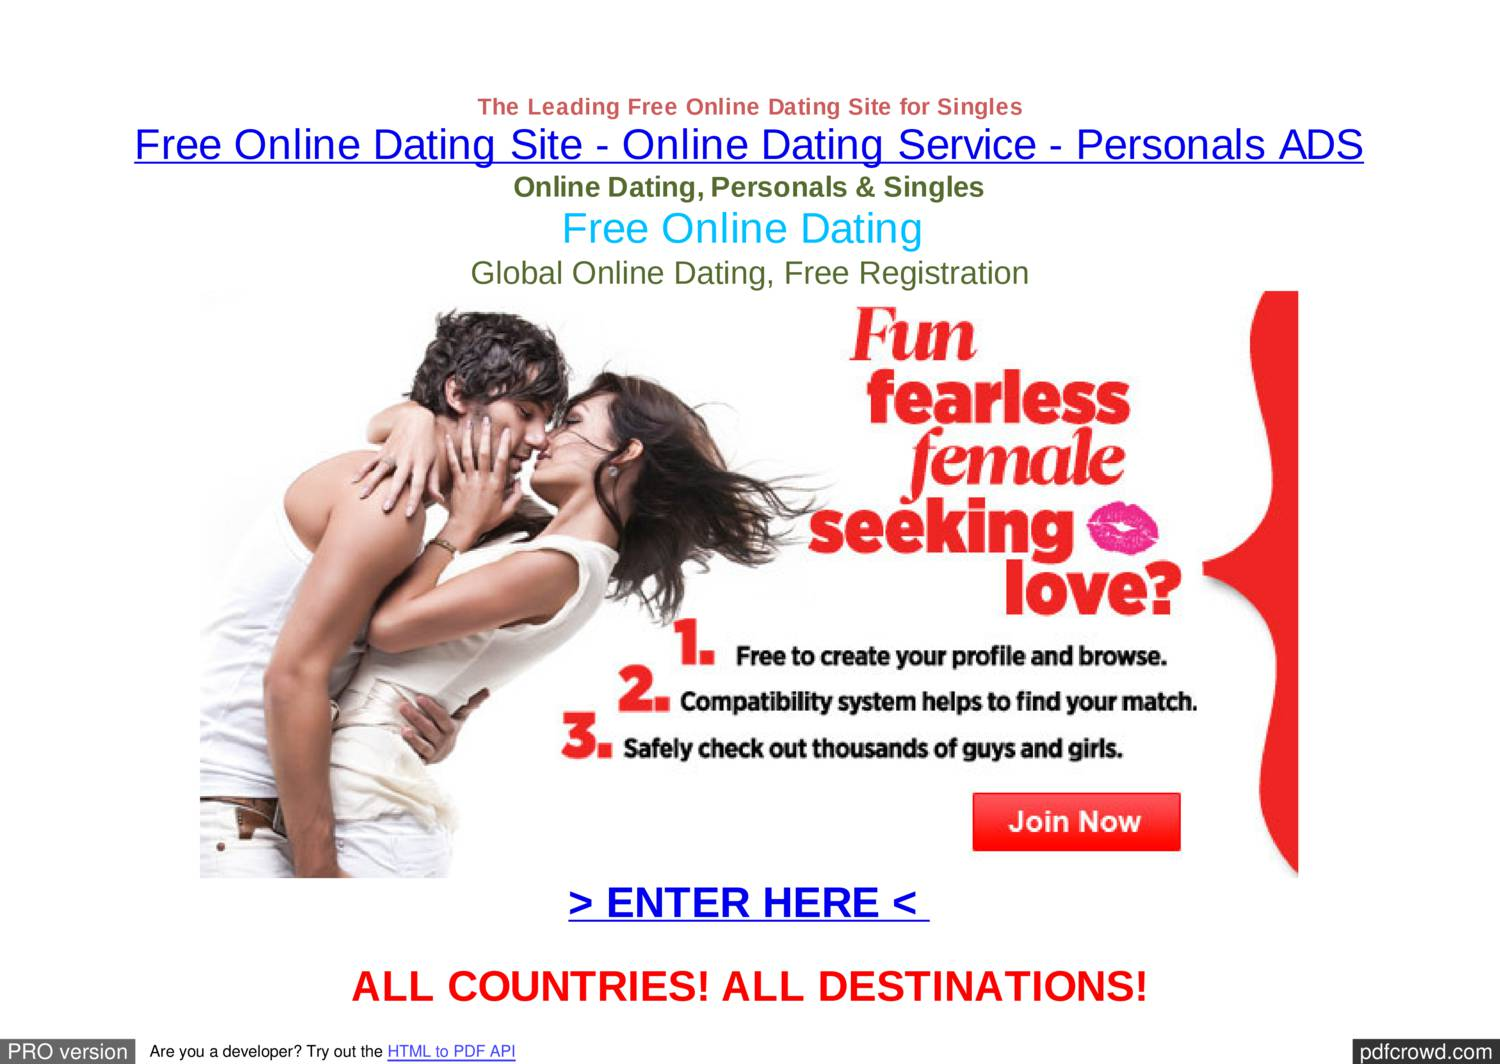 100% free online dating in peristrion Many other dating sites charge for their services and we think that a true love should be 100% free flirty9com is a 100% free online dating site and we promise to never charge for any service to any member.